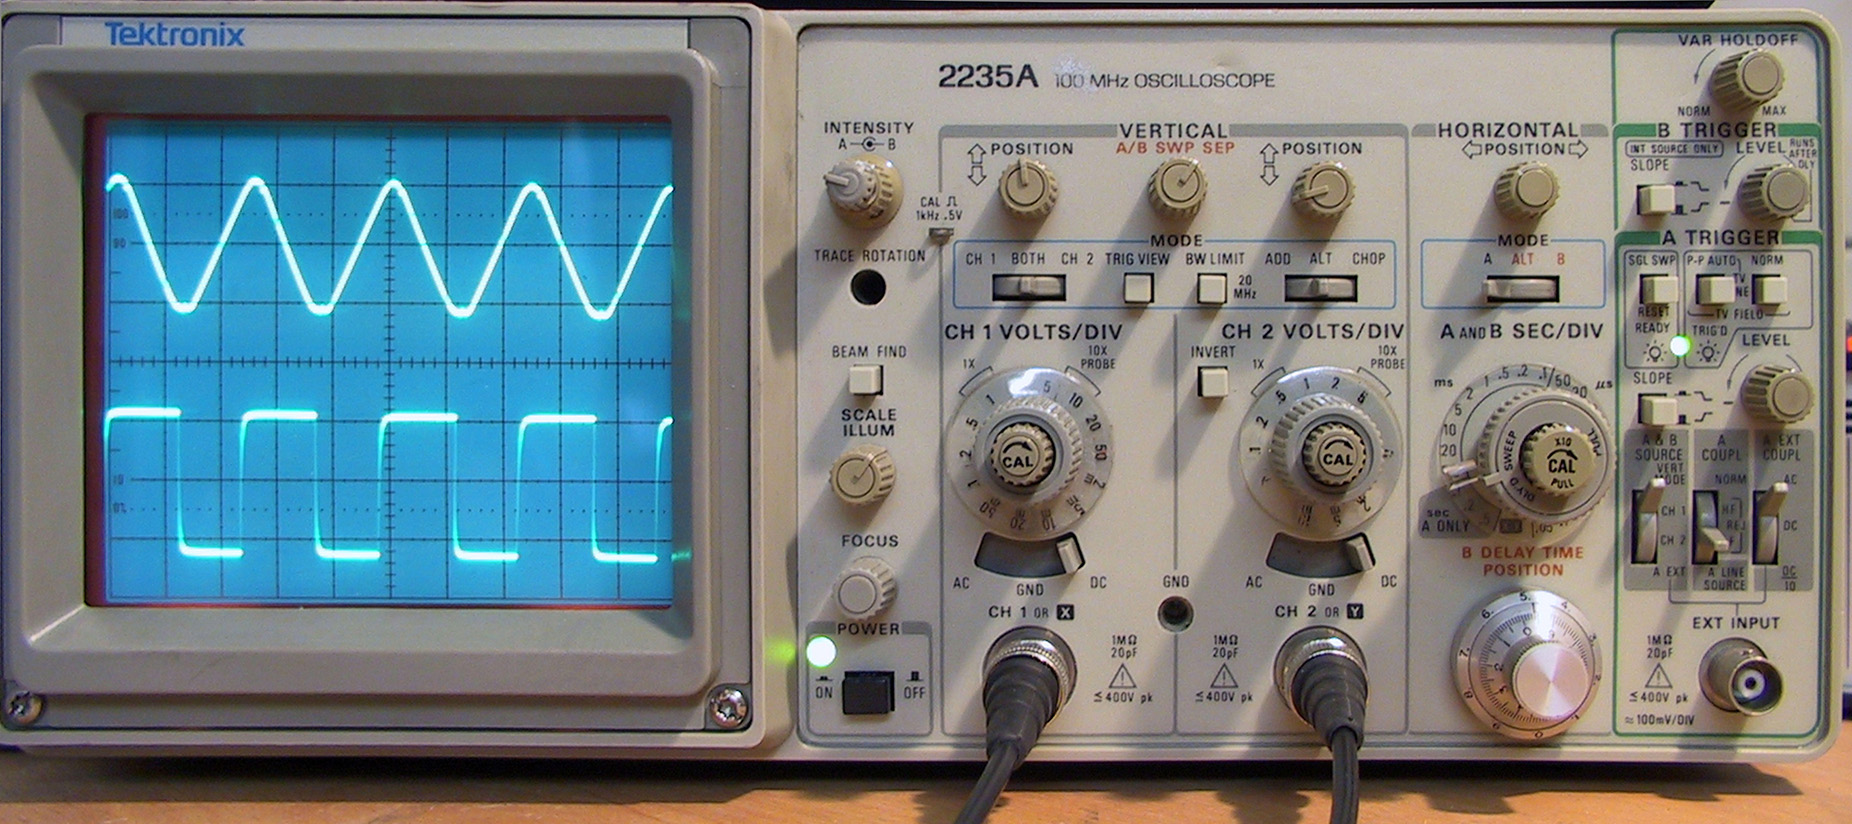 Tektronix Analog Oscilloscope : Tektronix analog oscilloscopes wikiwand